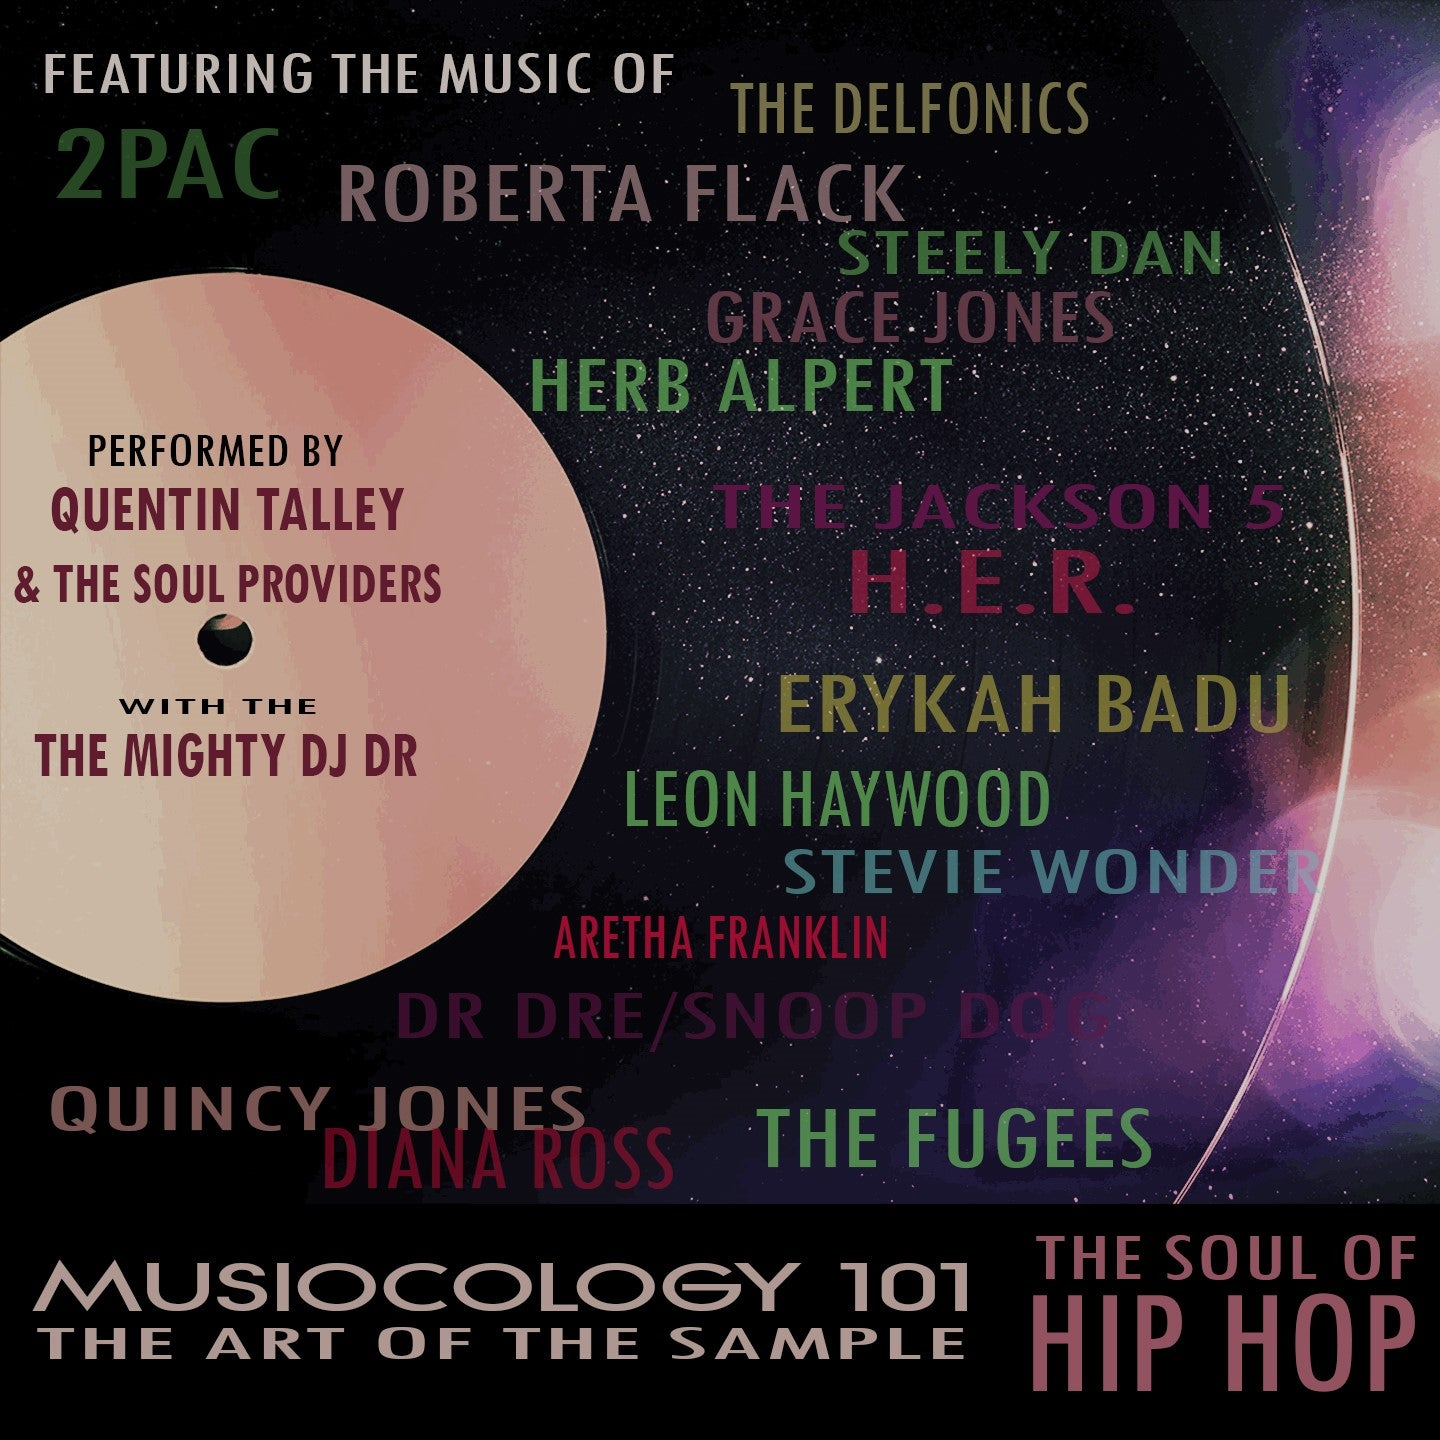 Musicology 101: The Art of The Sample: The Soul of Hip Hop